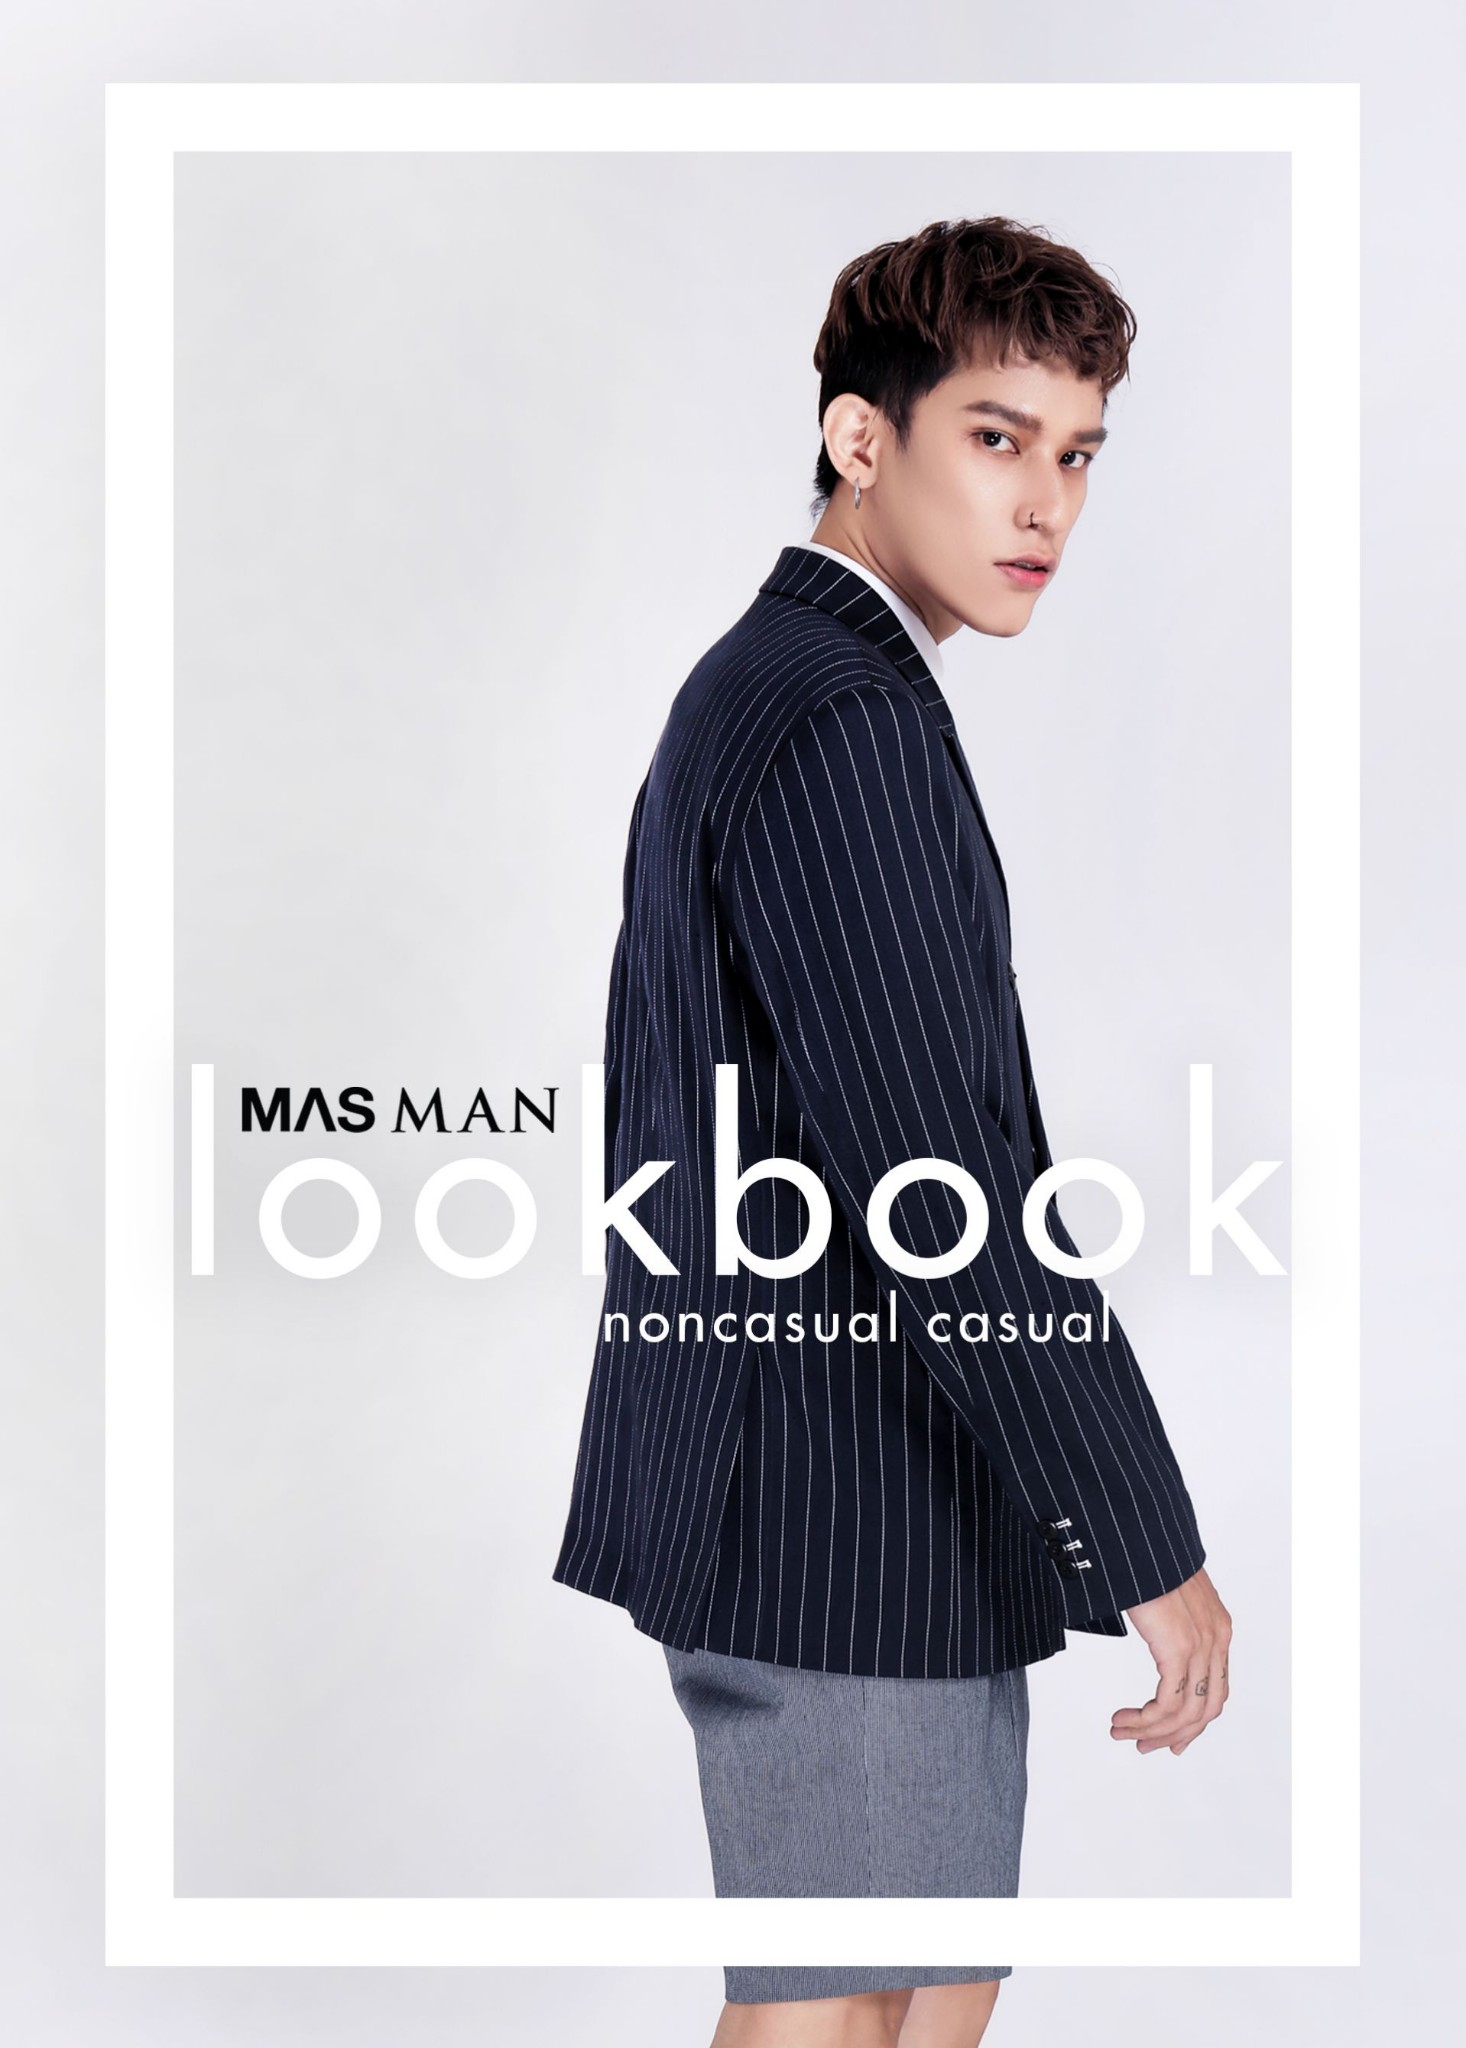 MAS MAN Summer 2018 Lookbook - Noncasual casual